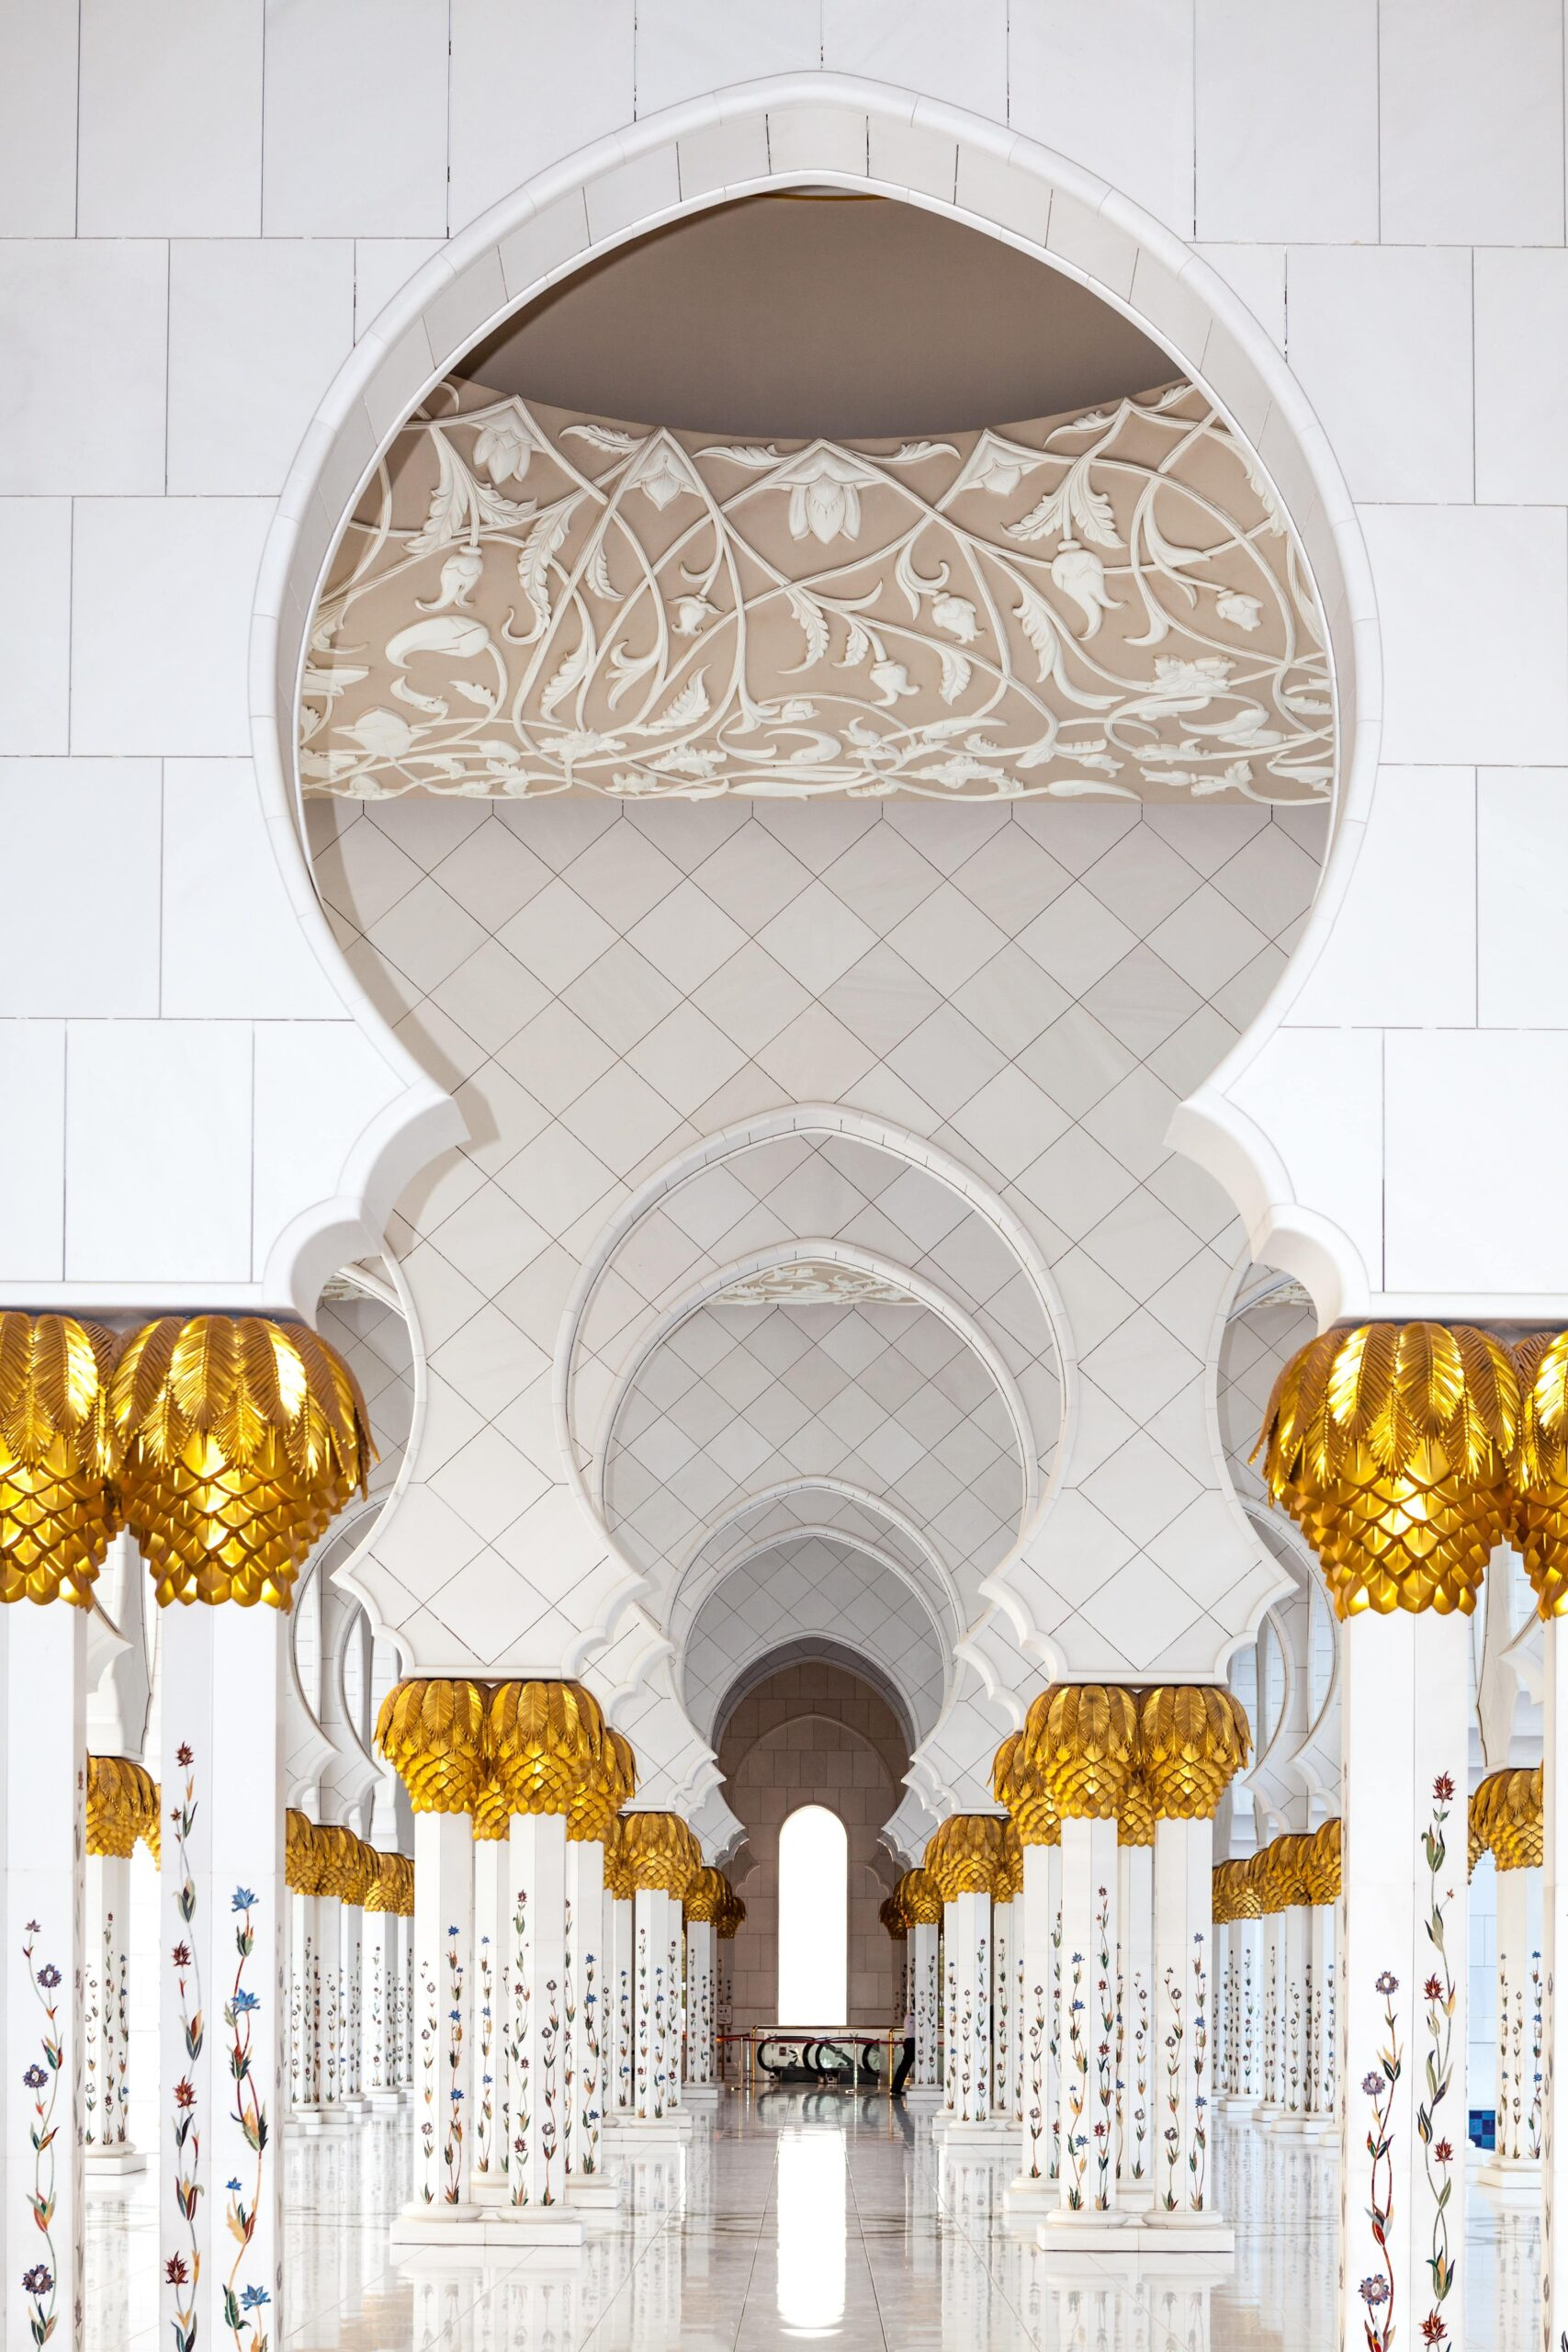 Interiors of the Sheikh Zayed Grand Mosque i